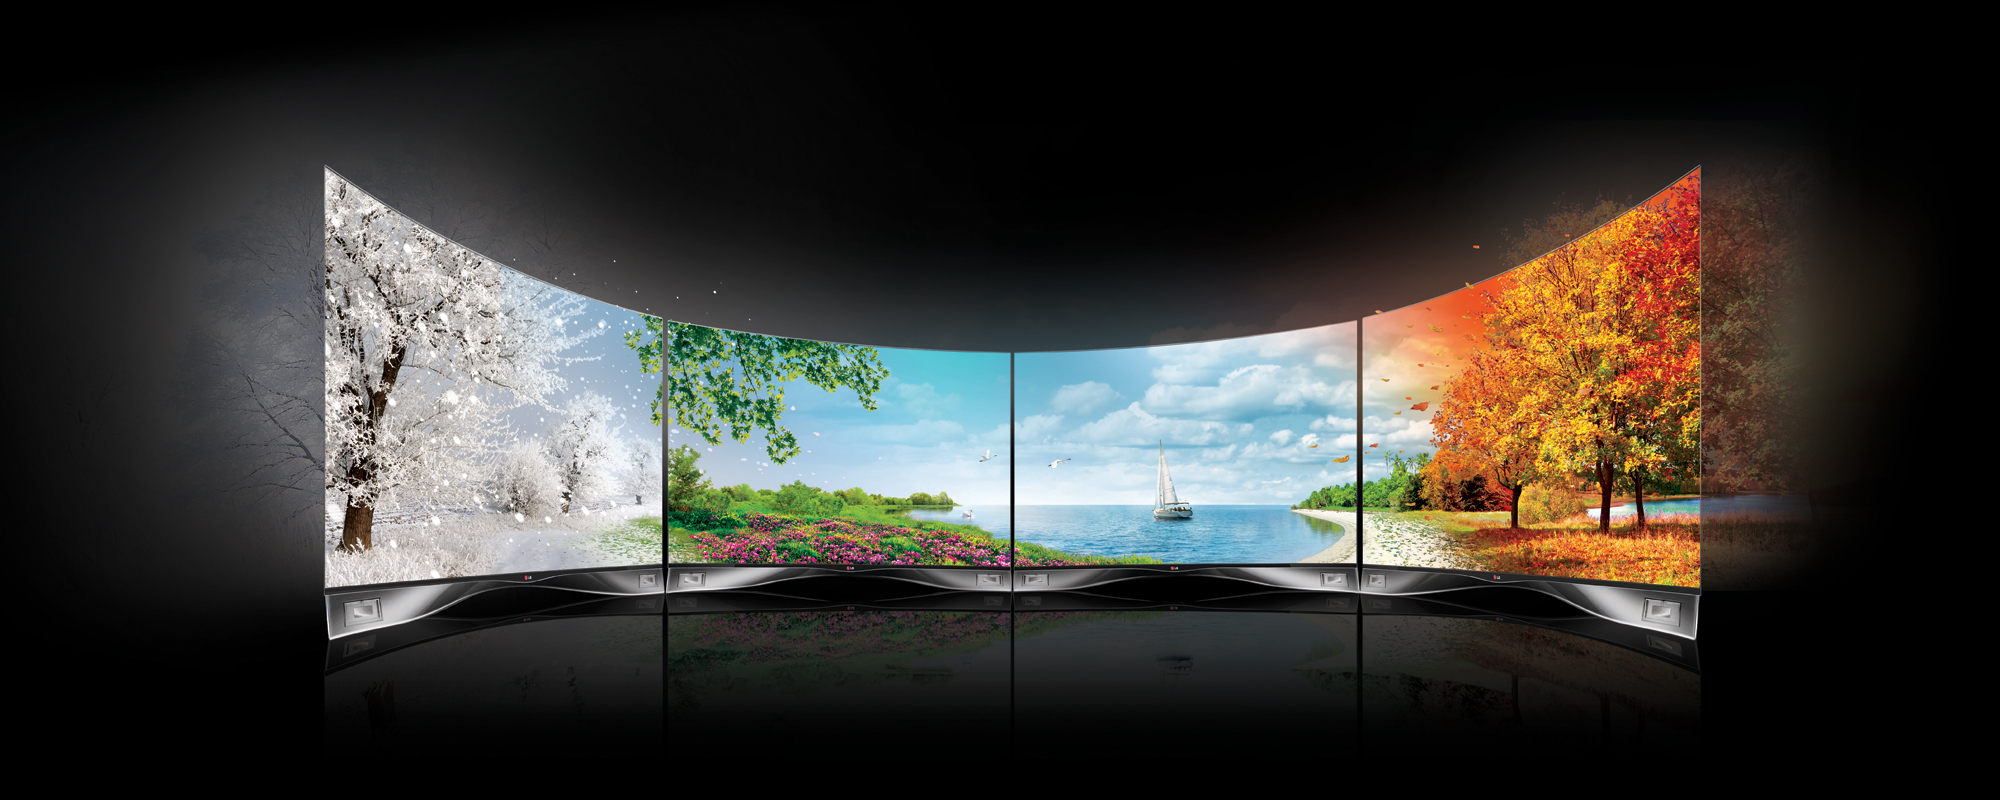 3d Wallpaper For Living Room Wall Lg To Roll Out World S First 4k Oled Display Igyaan Network